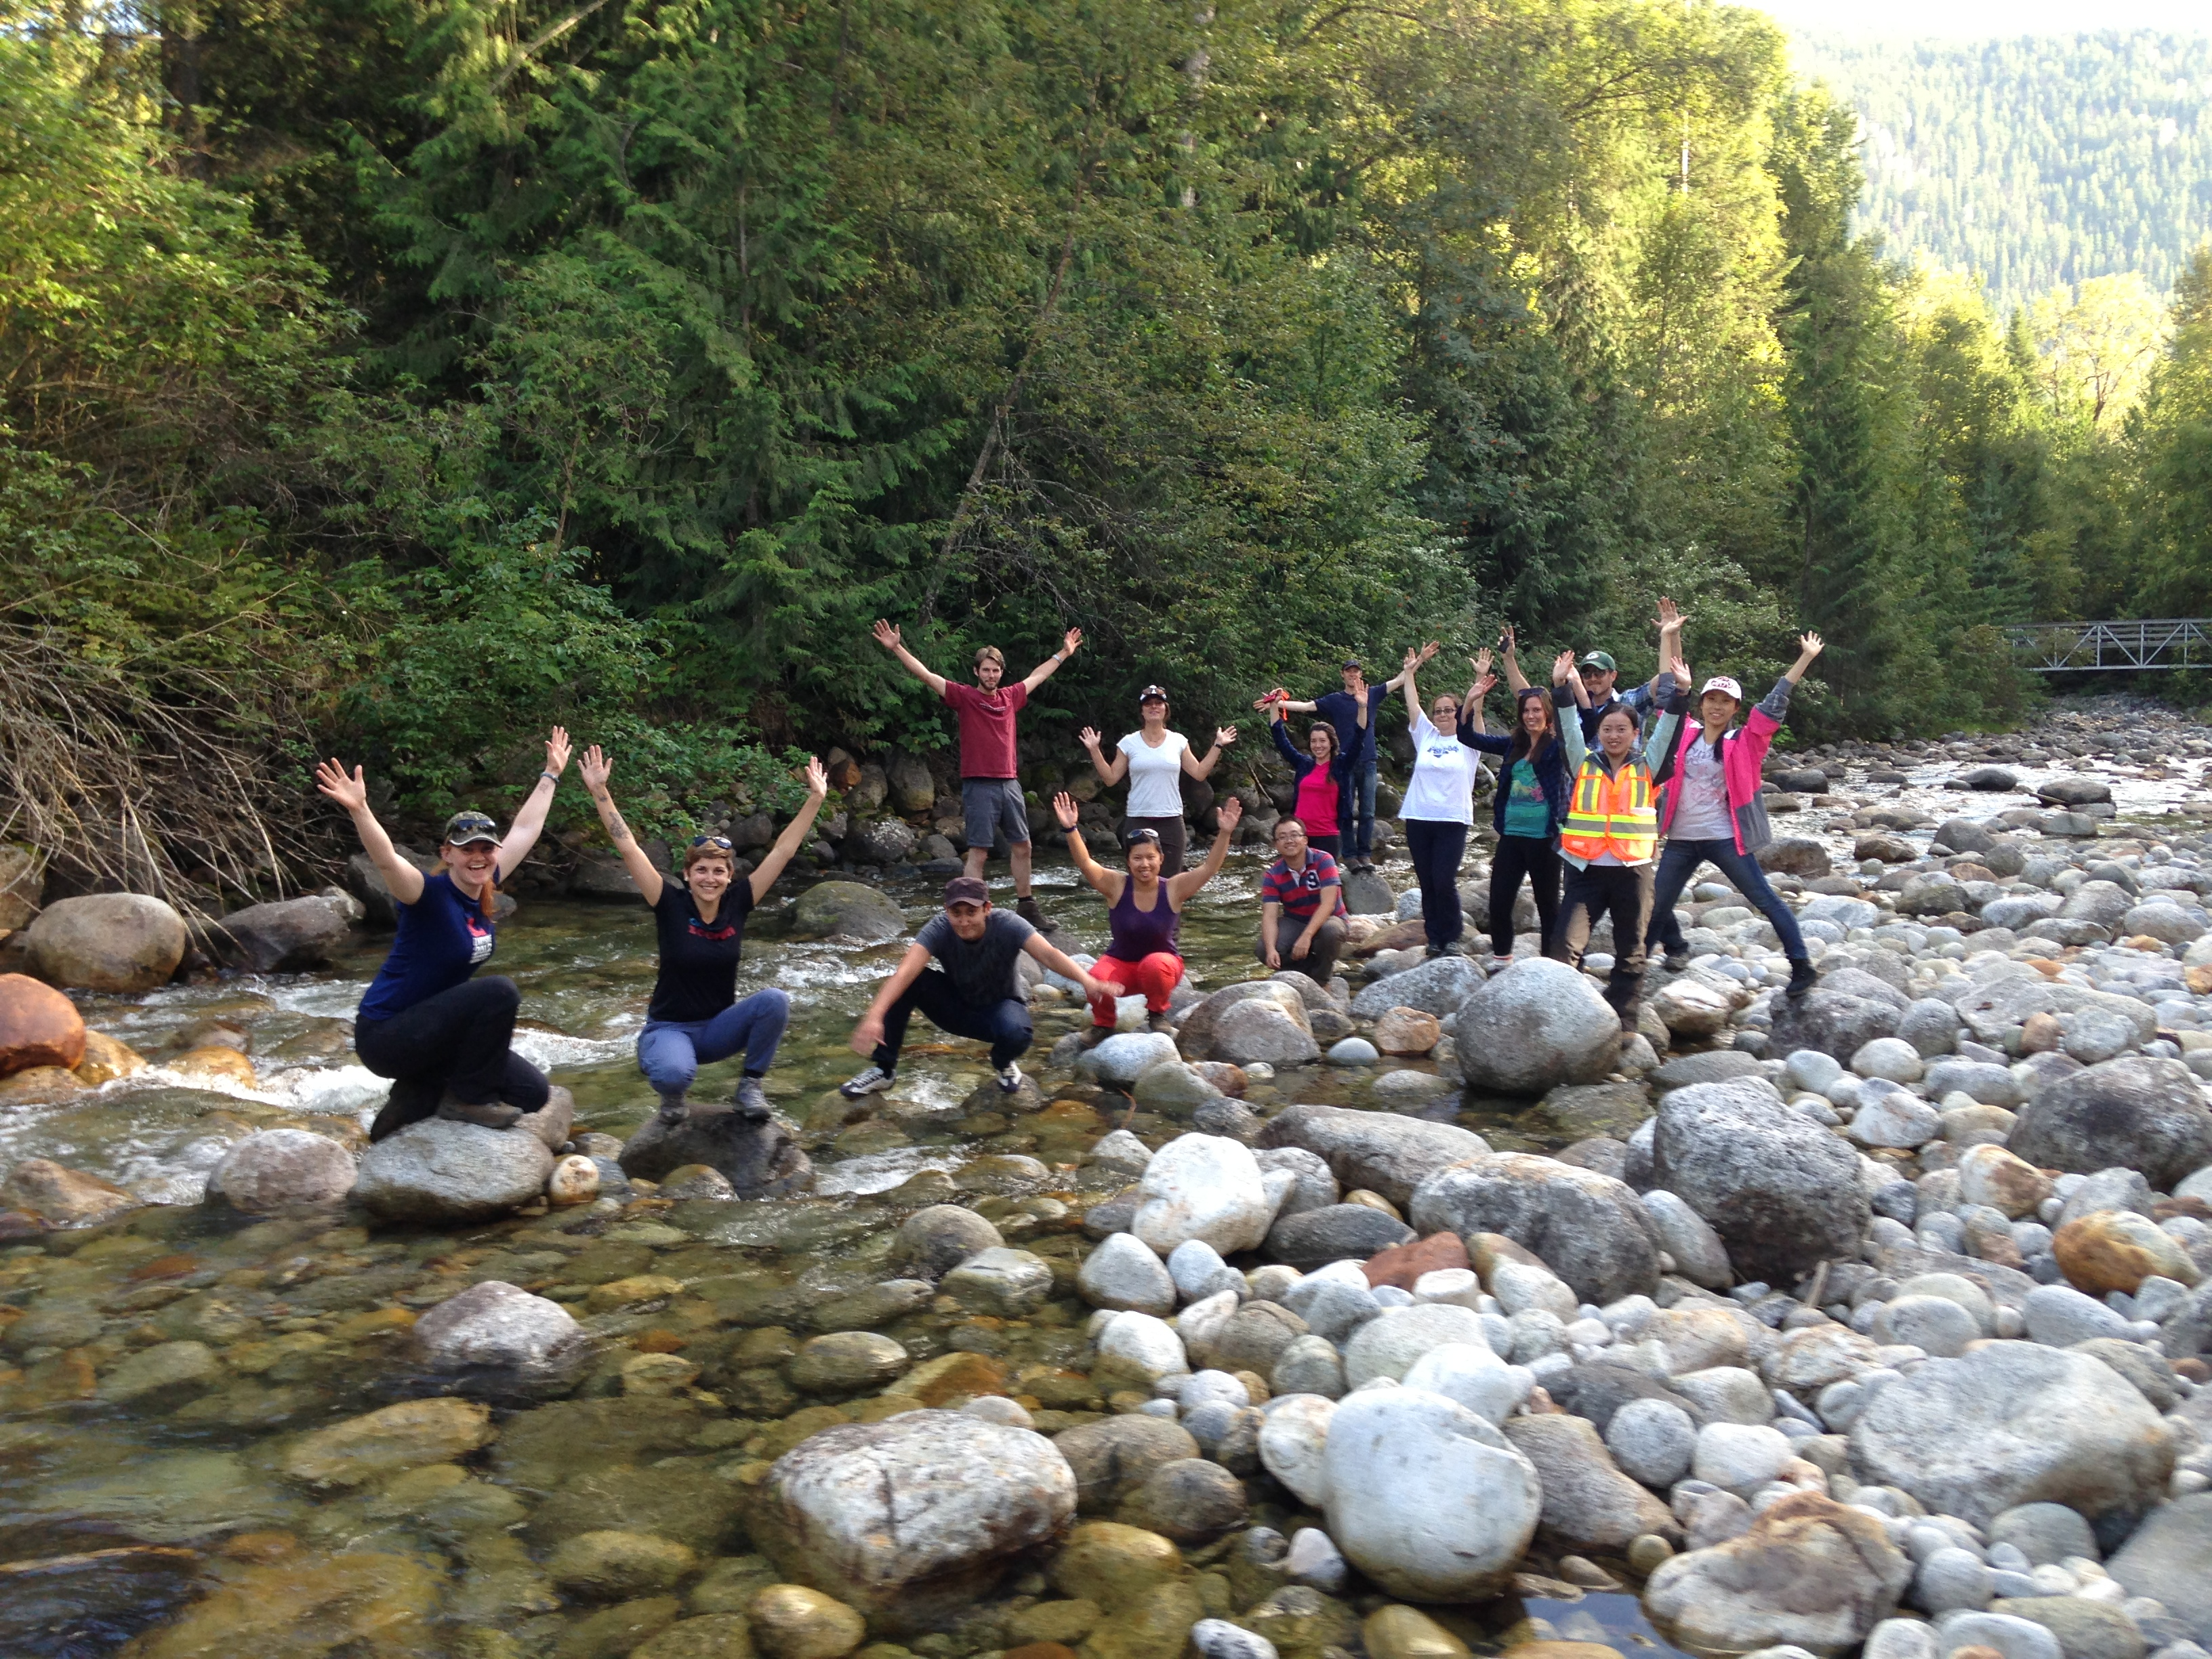 MSFM students on a field trip in the West Kootenays, BC